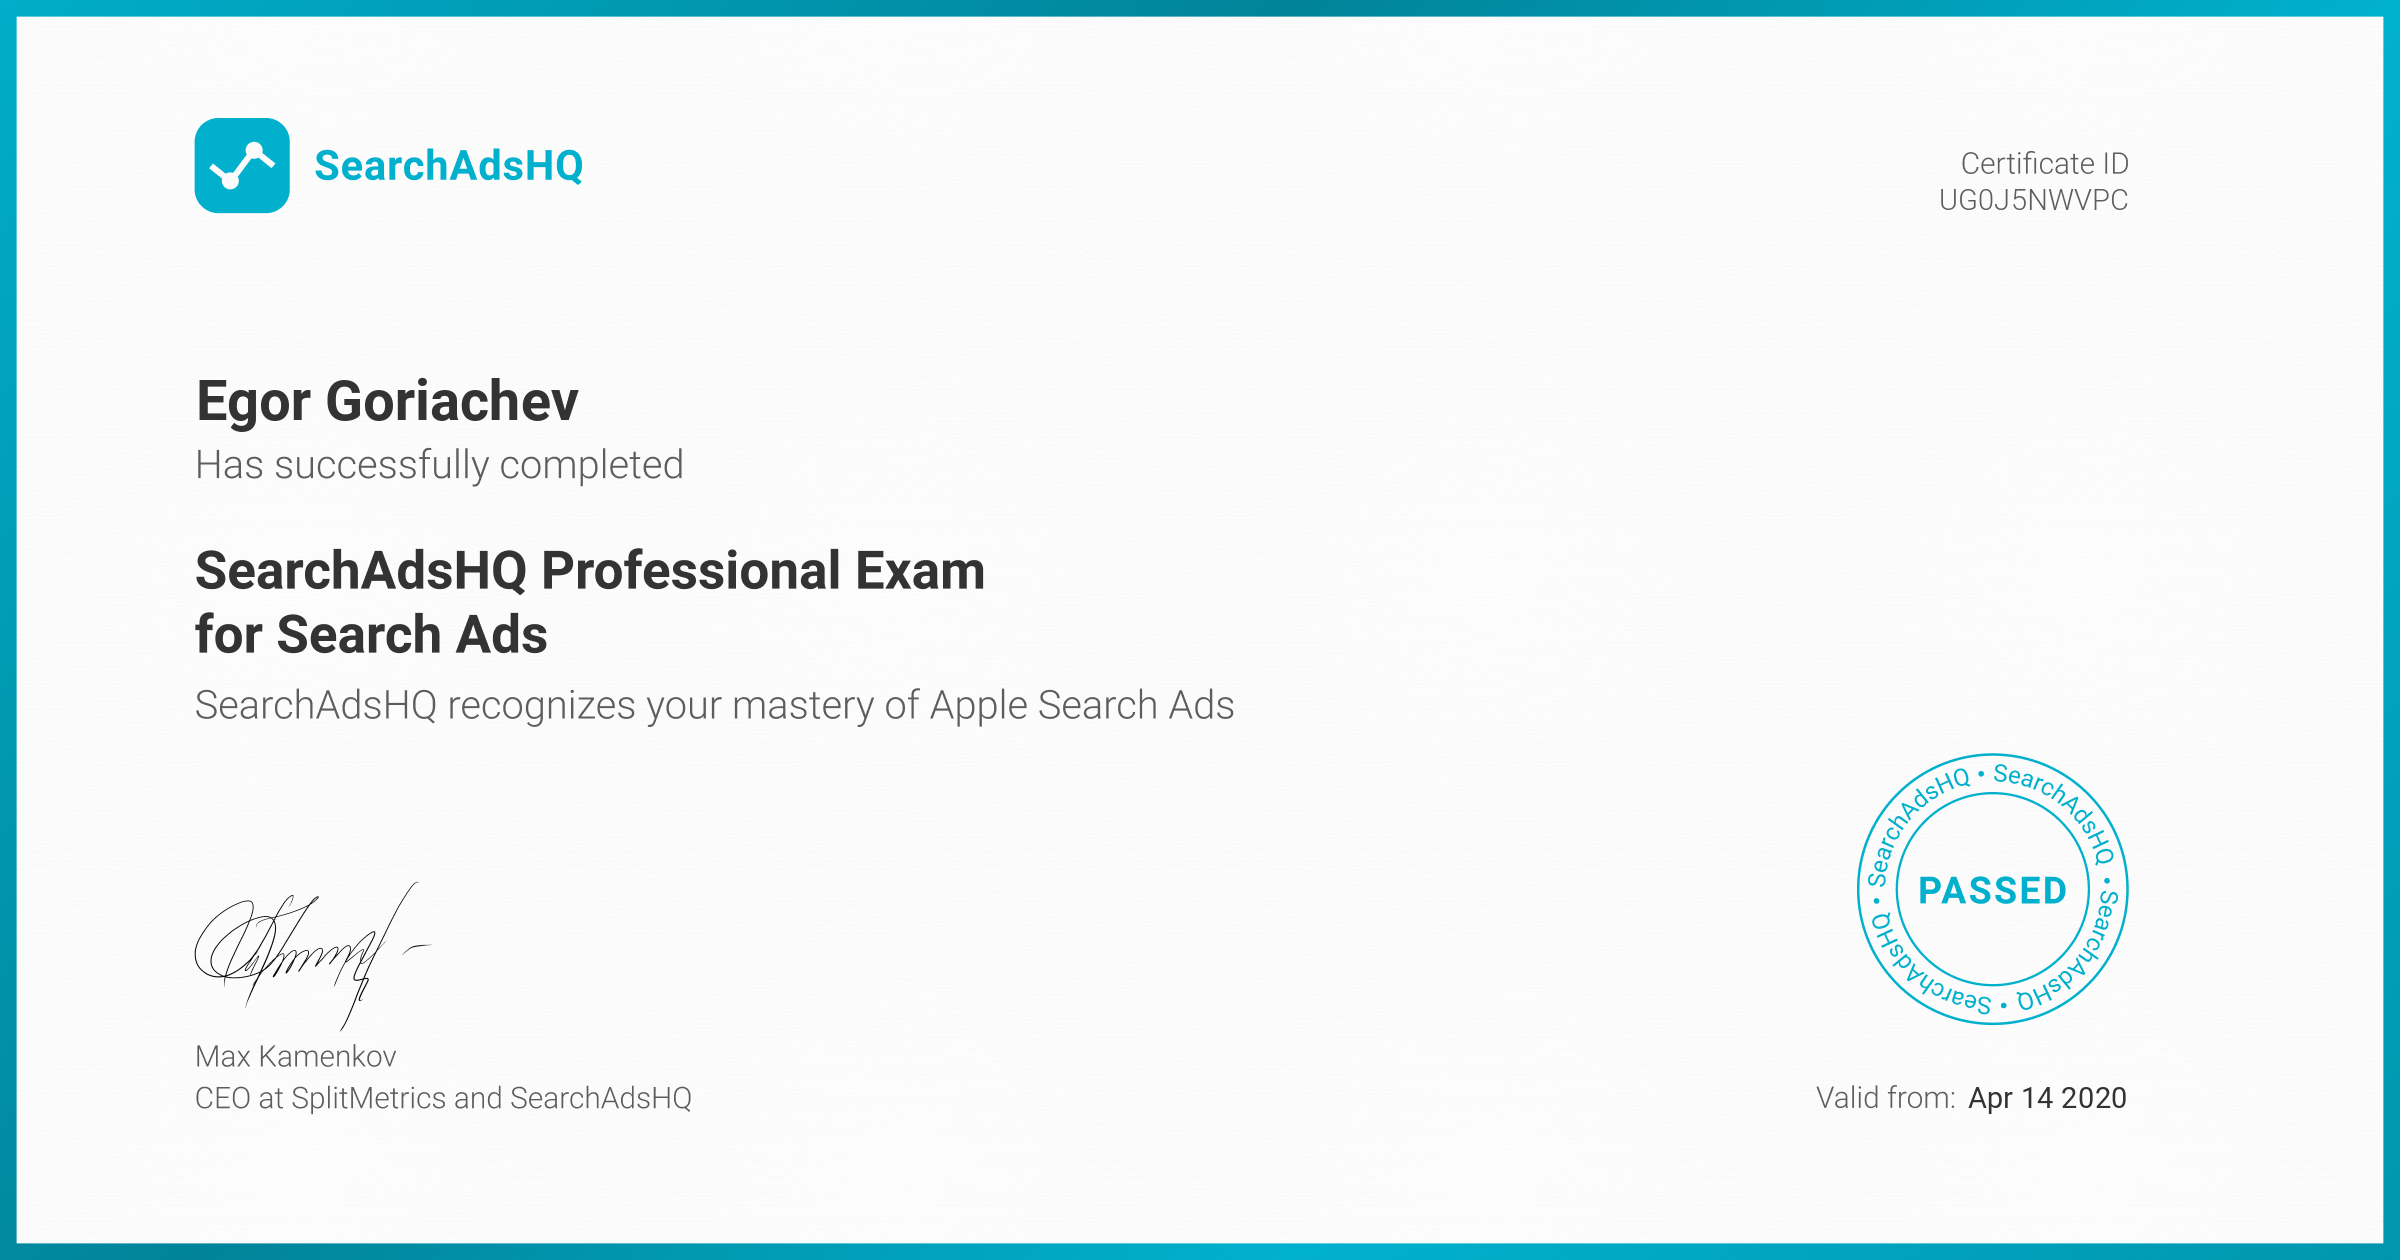 Certificate for Egor Goriachev   SearchAdsHQ Professional Exam for Search Ads